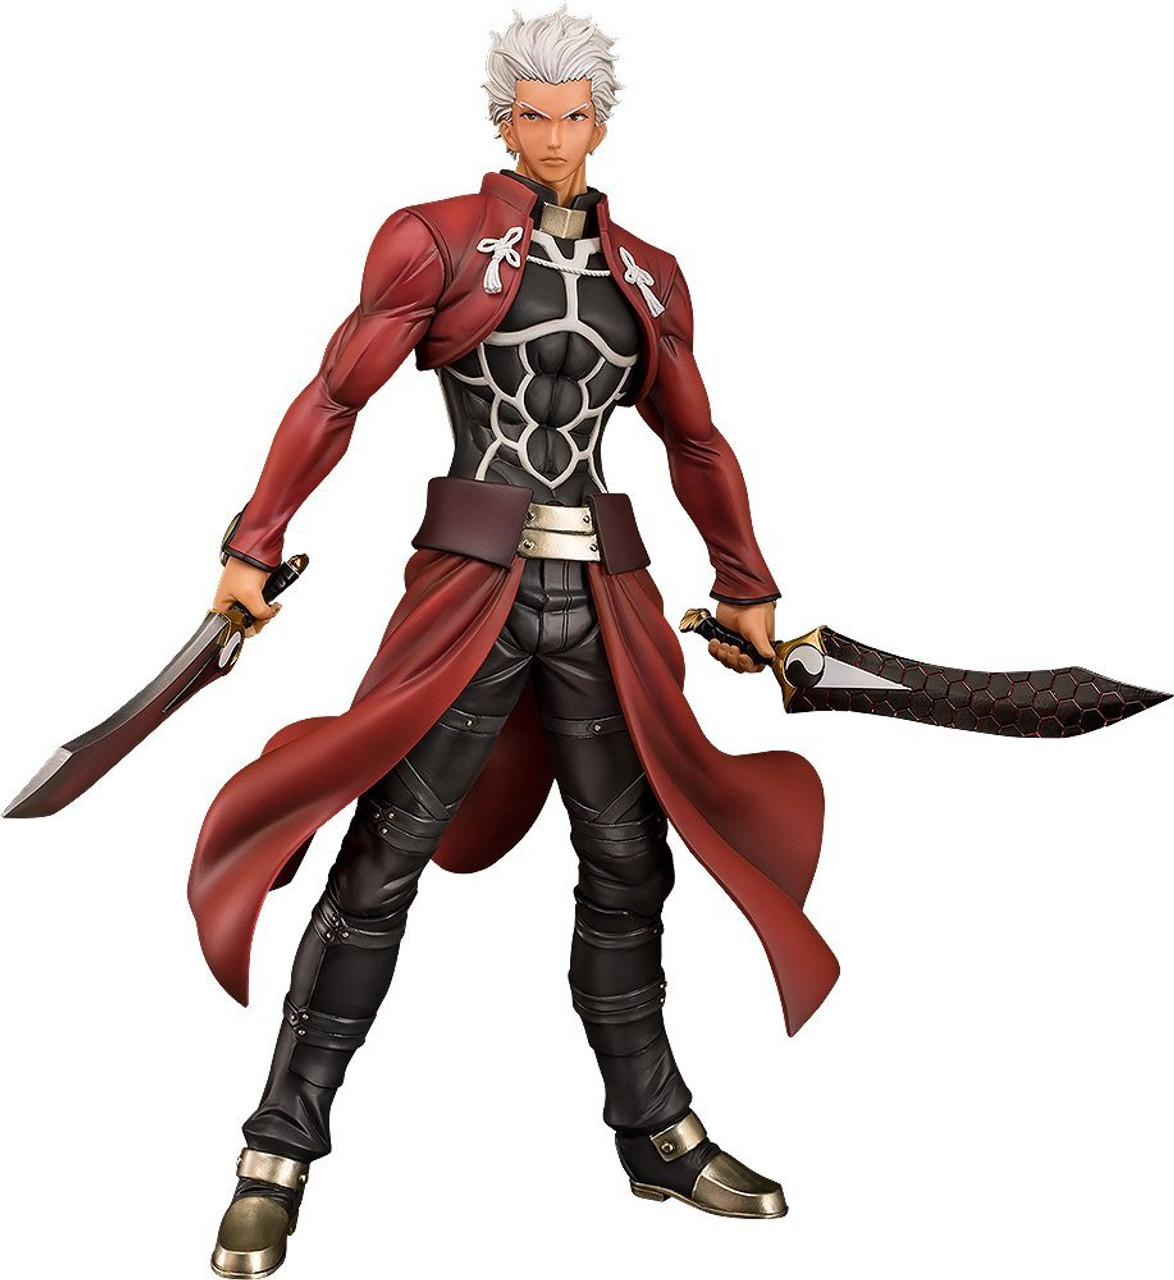 Archer Route Unlimited Blade Works 1 7 Figure Plazajapan